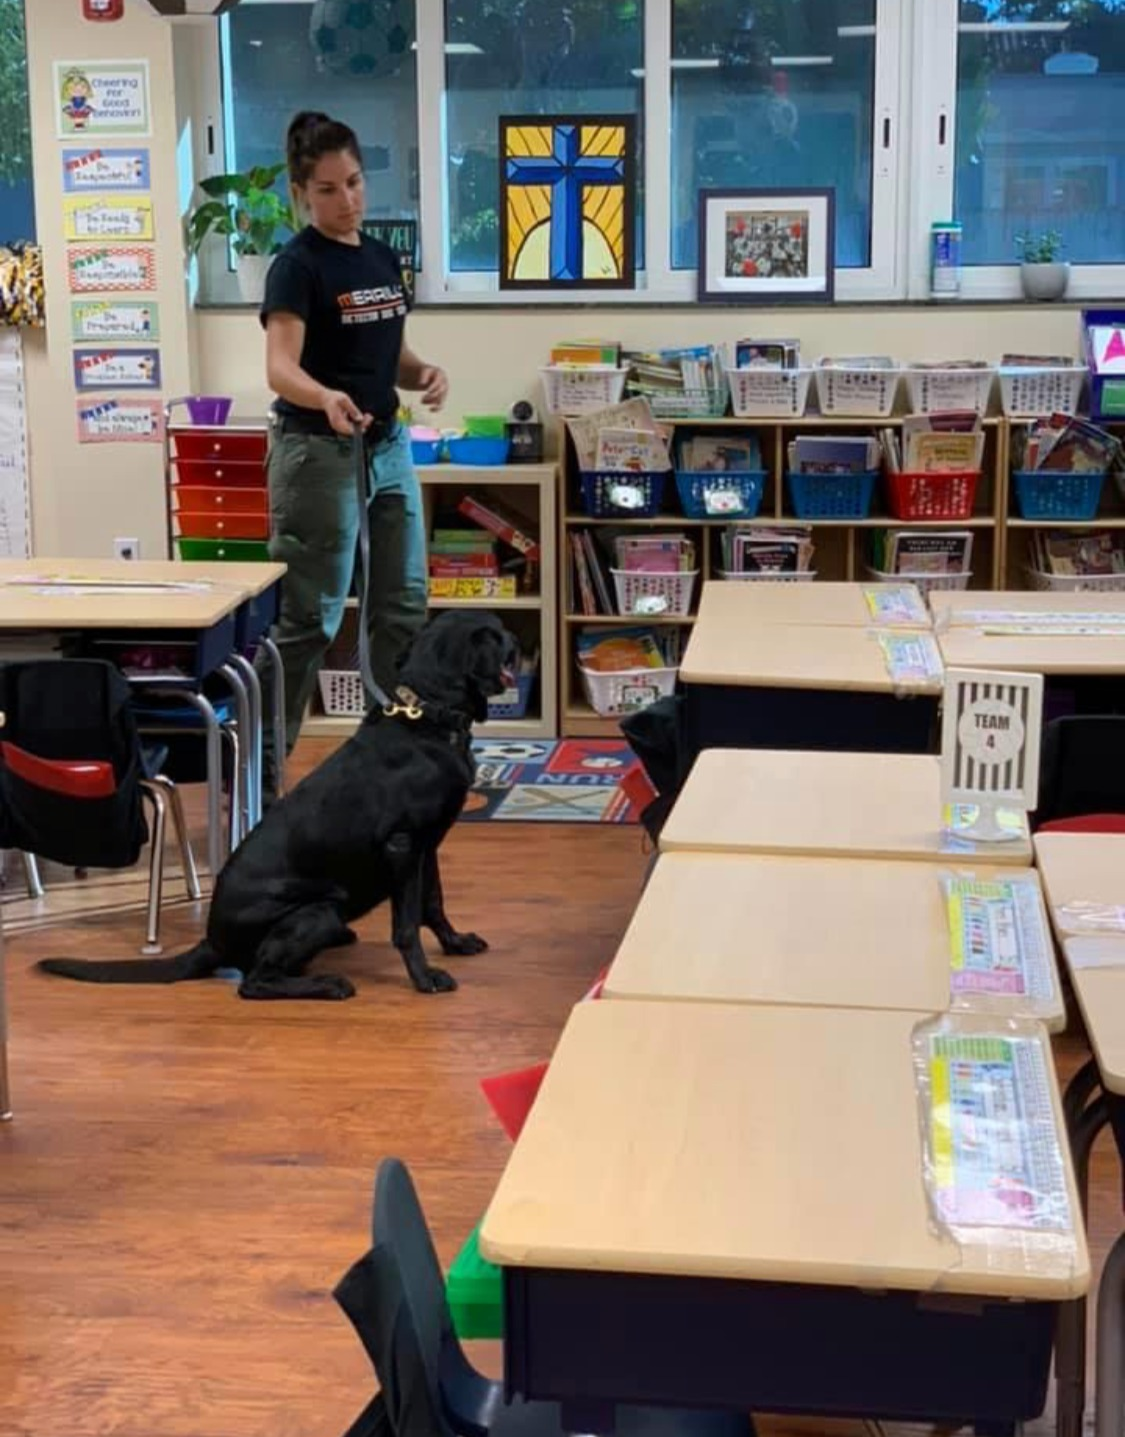 Bianca & a K9 searching a classroom.